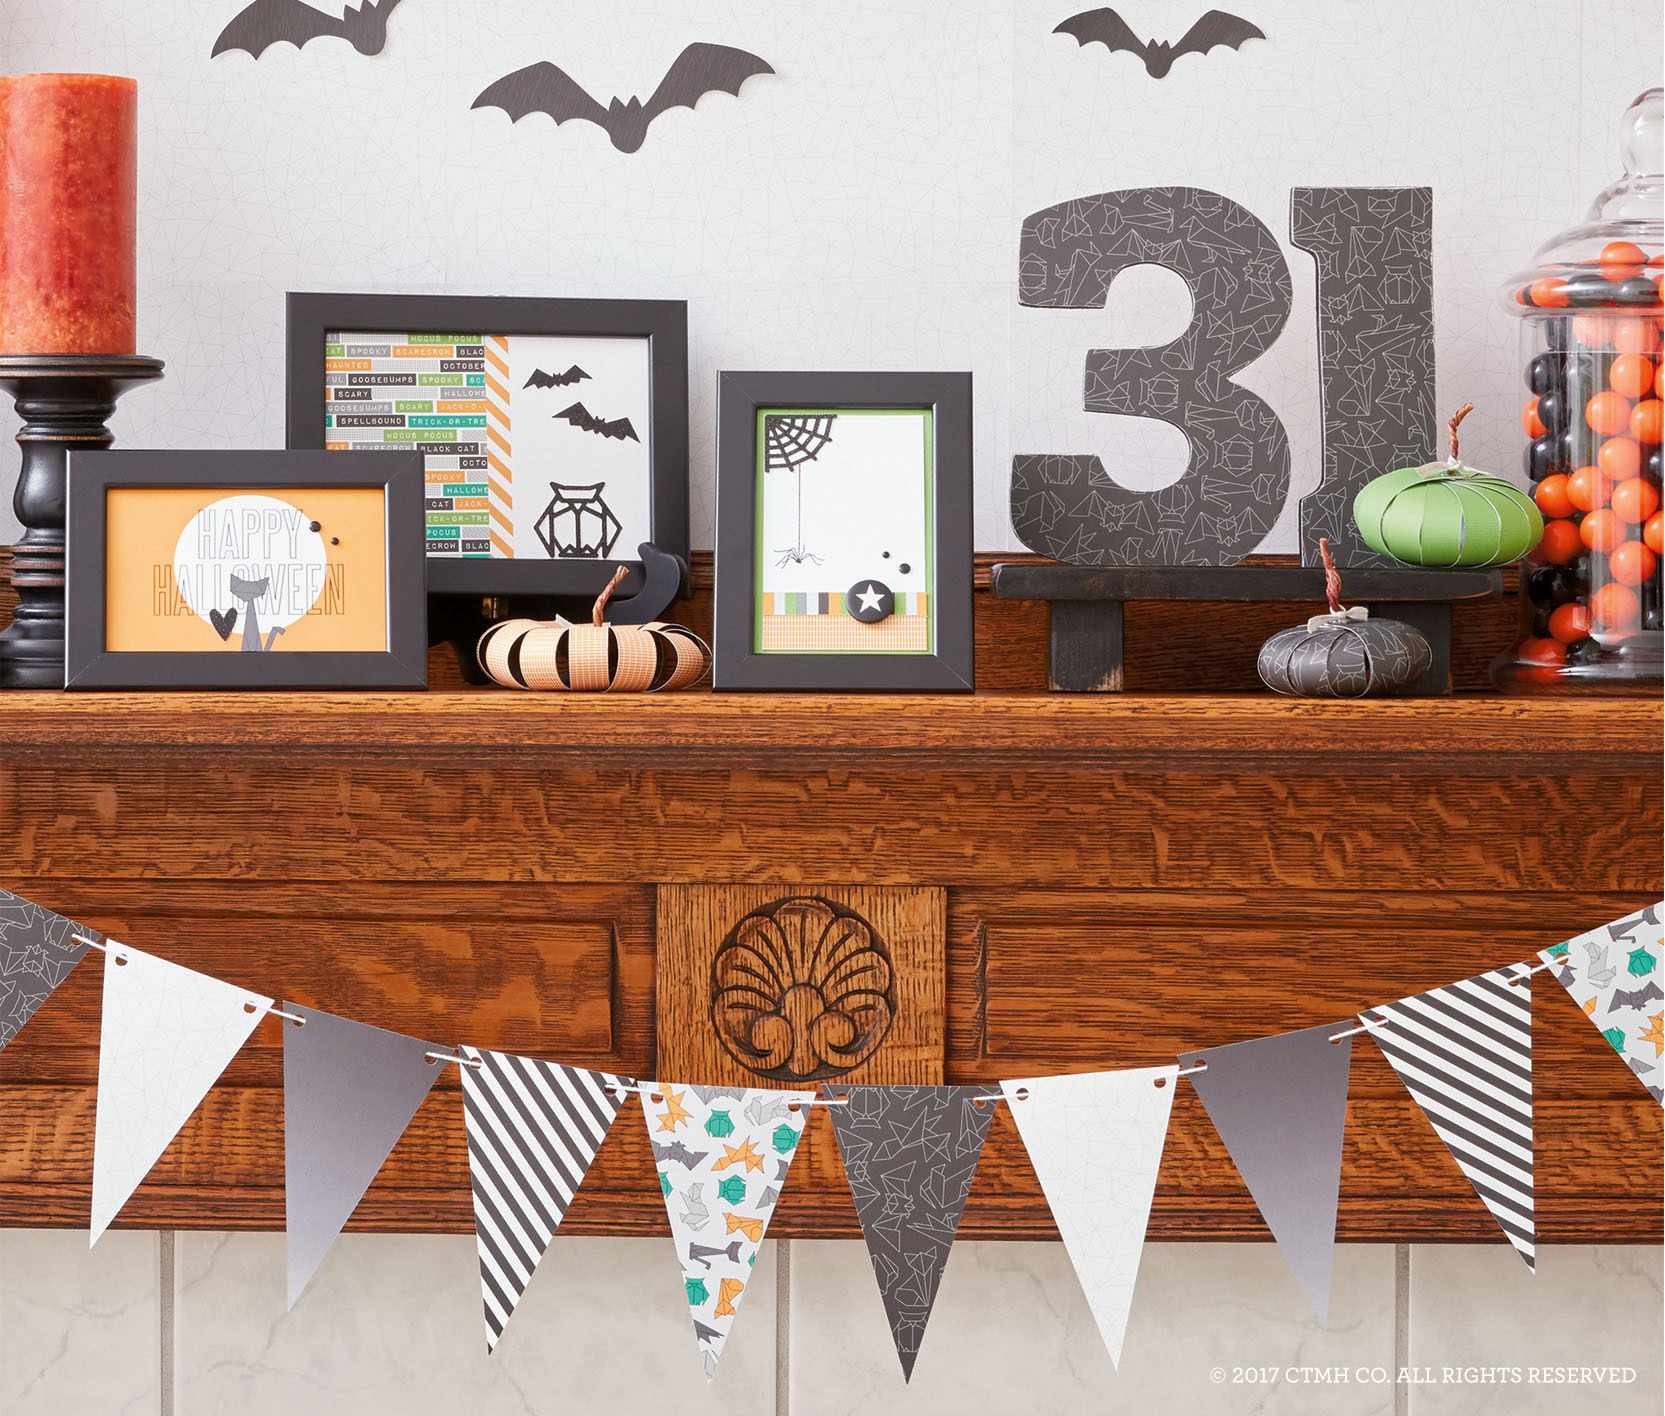 Cats & Bats Home Décor